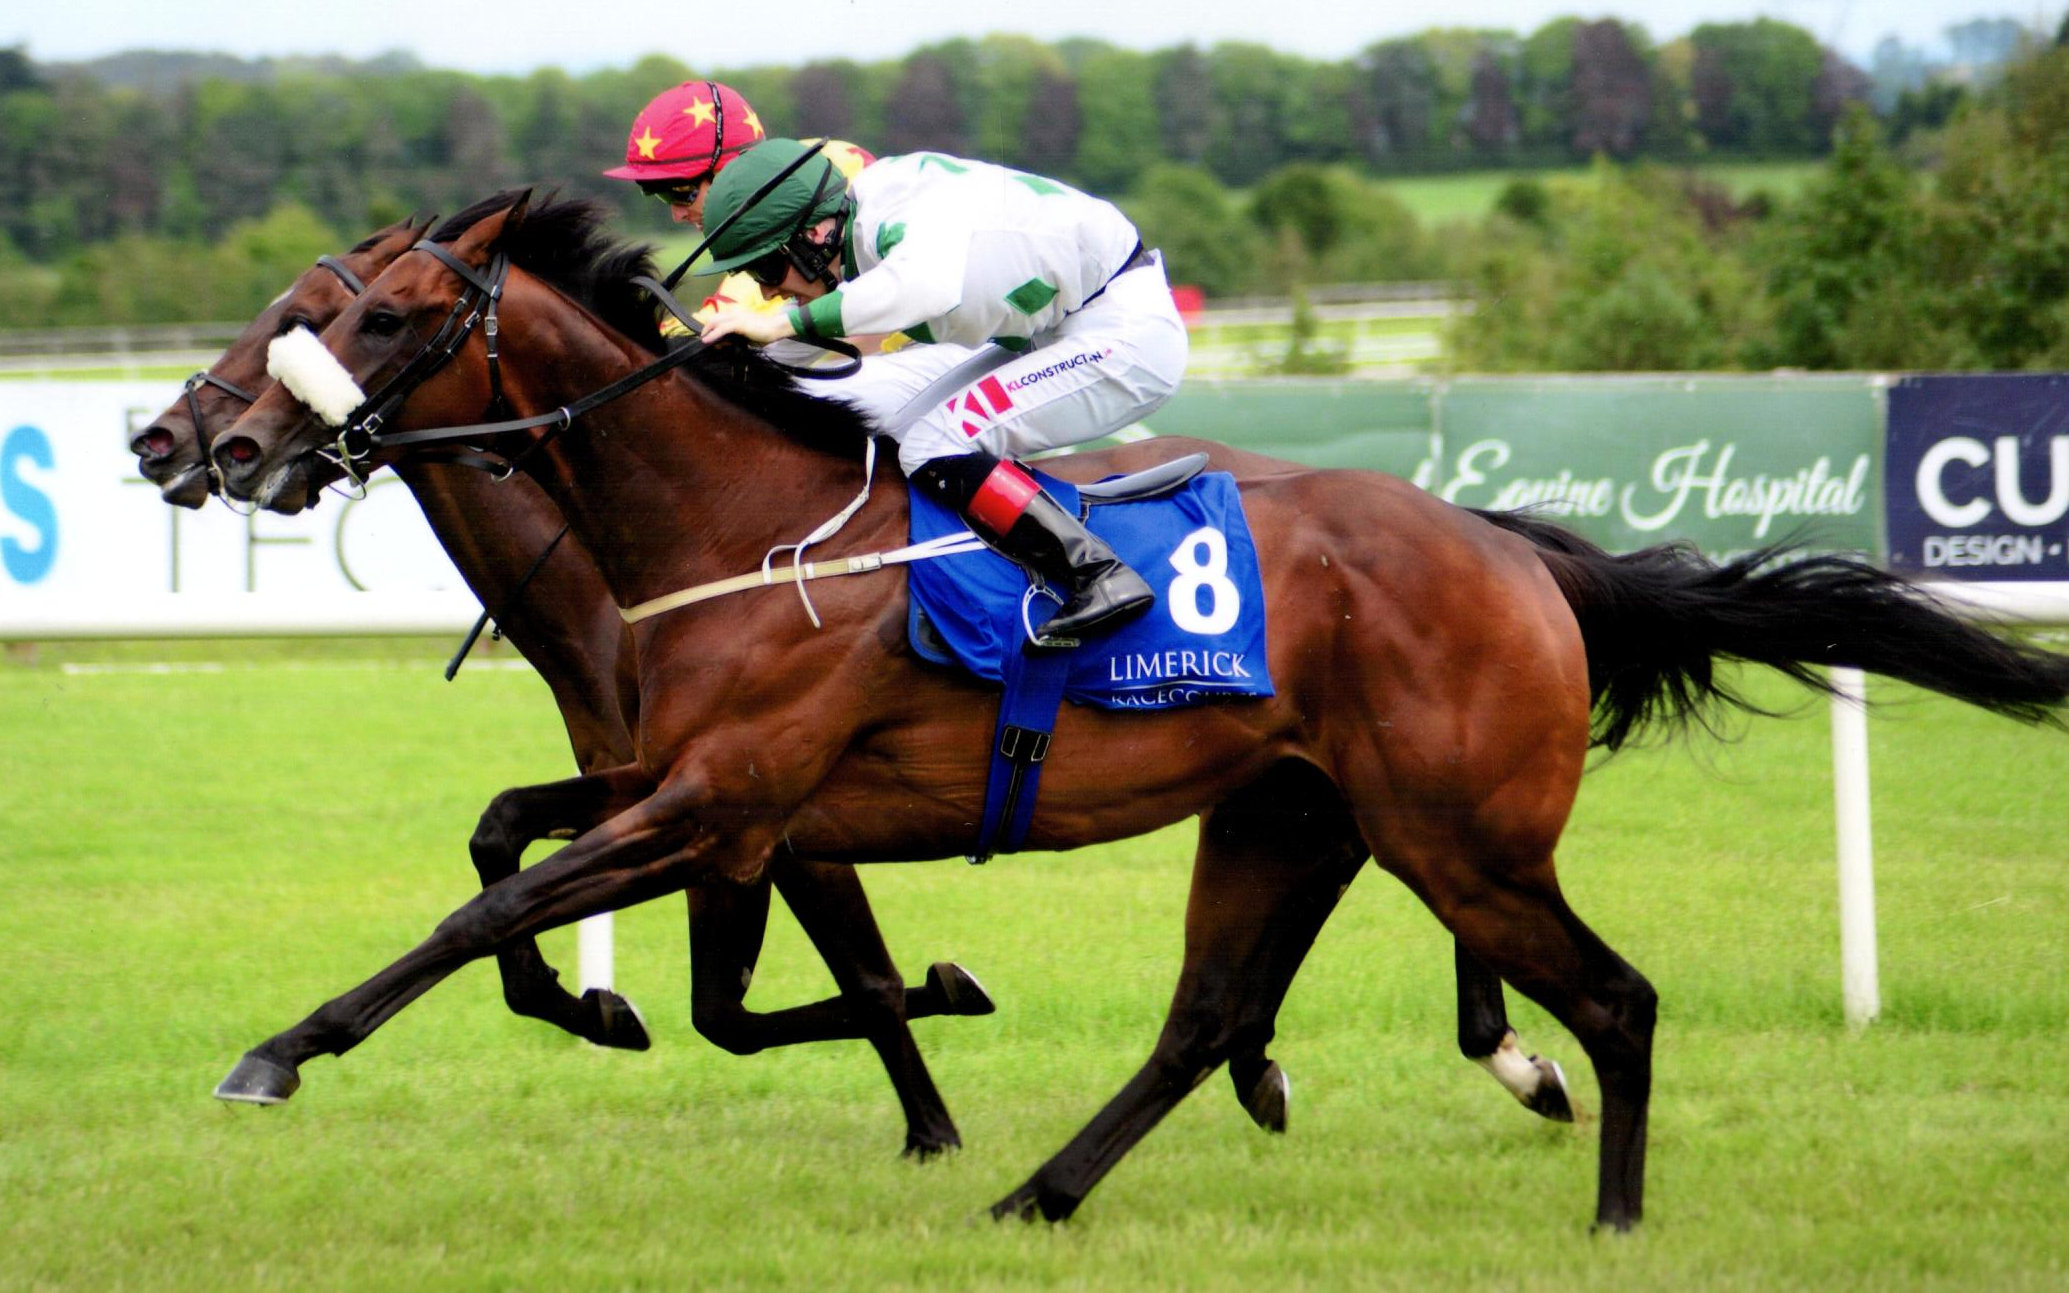 PHOENIX OPEN is pushed out by Colin (green and white) to win his maiden at Limerick, 7th July 2019